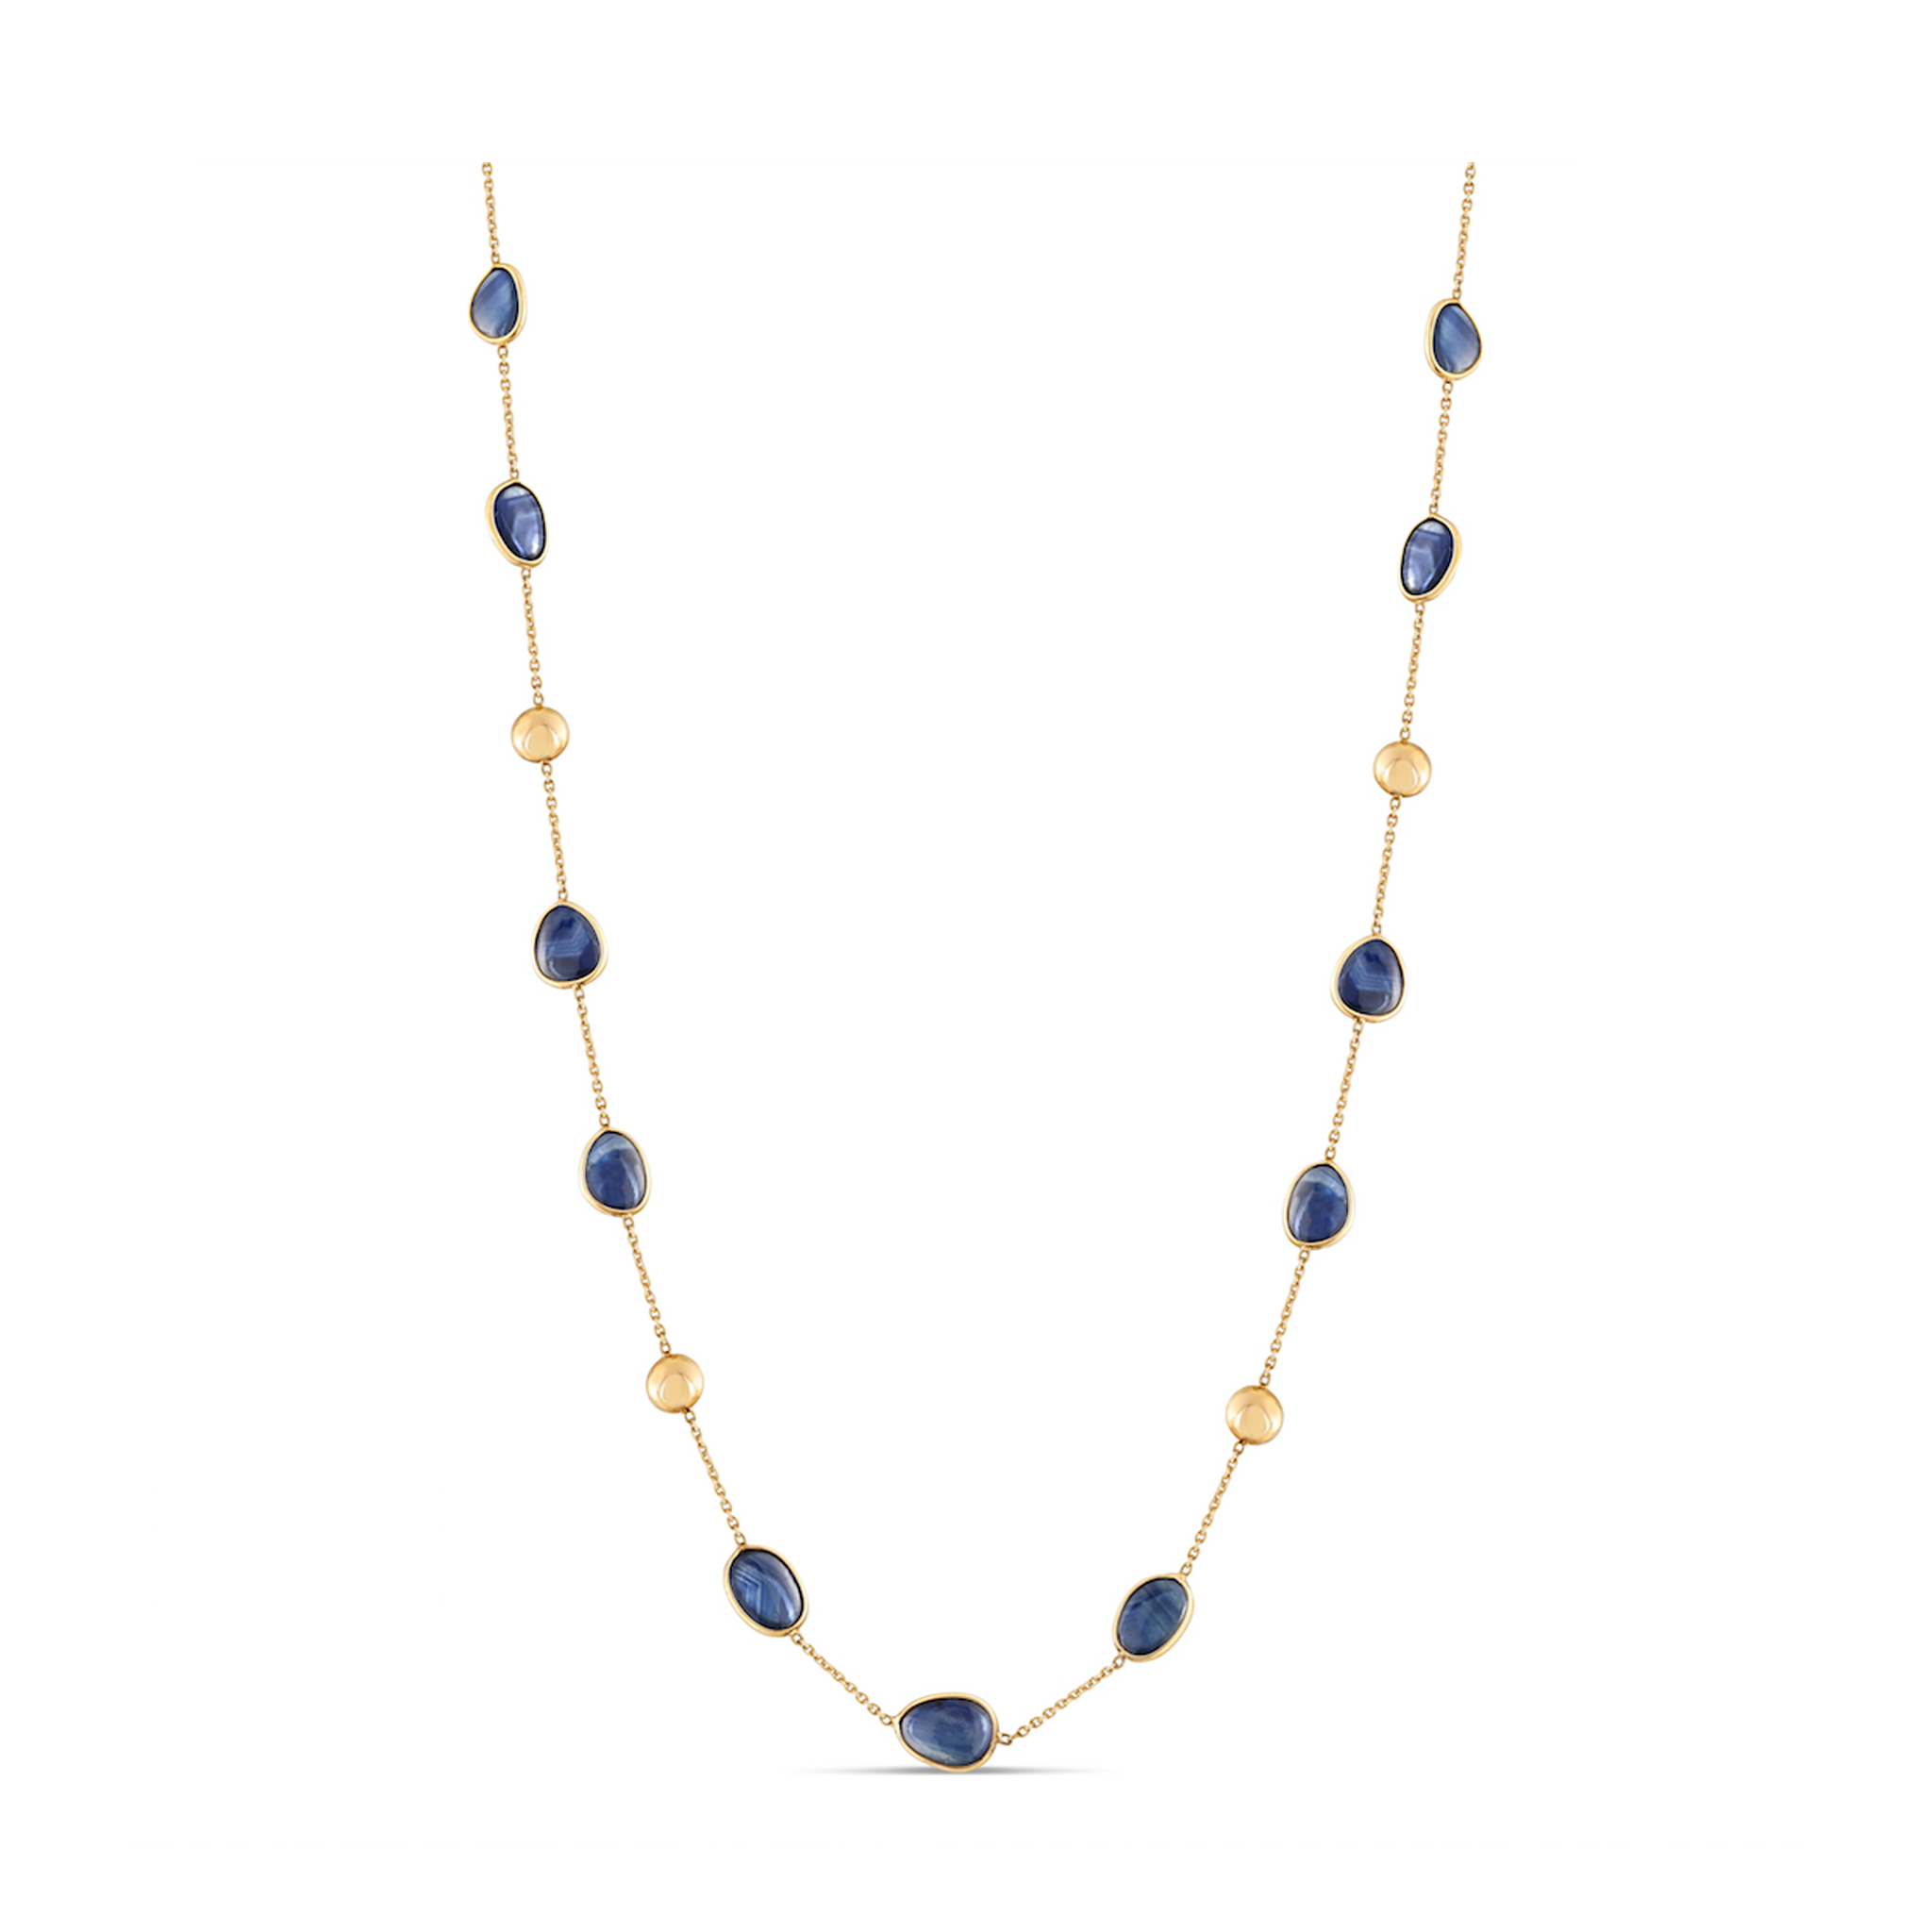 18Kt Yellow Gold Necklace With Blue Sapphire